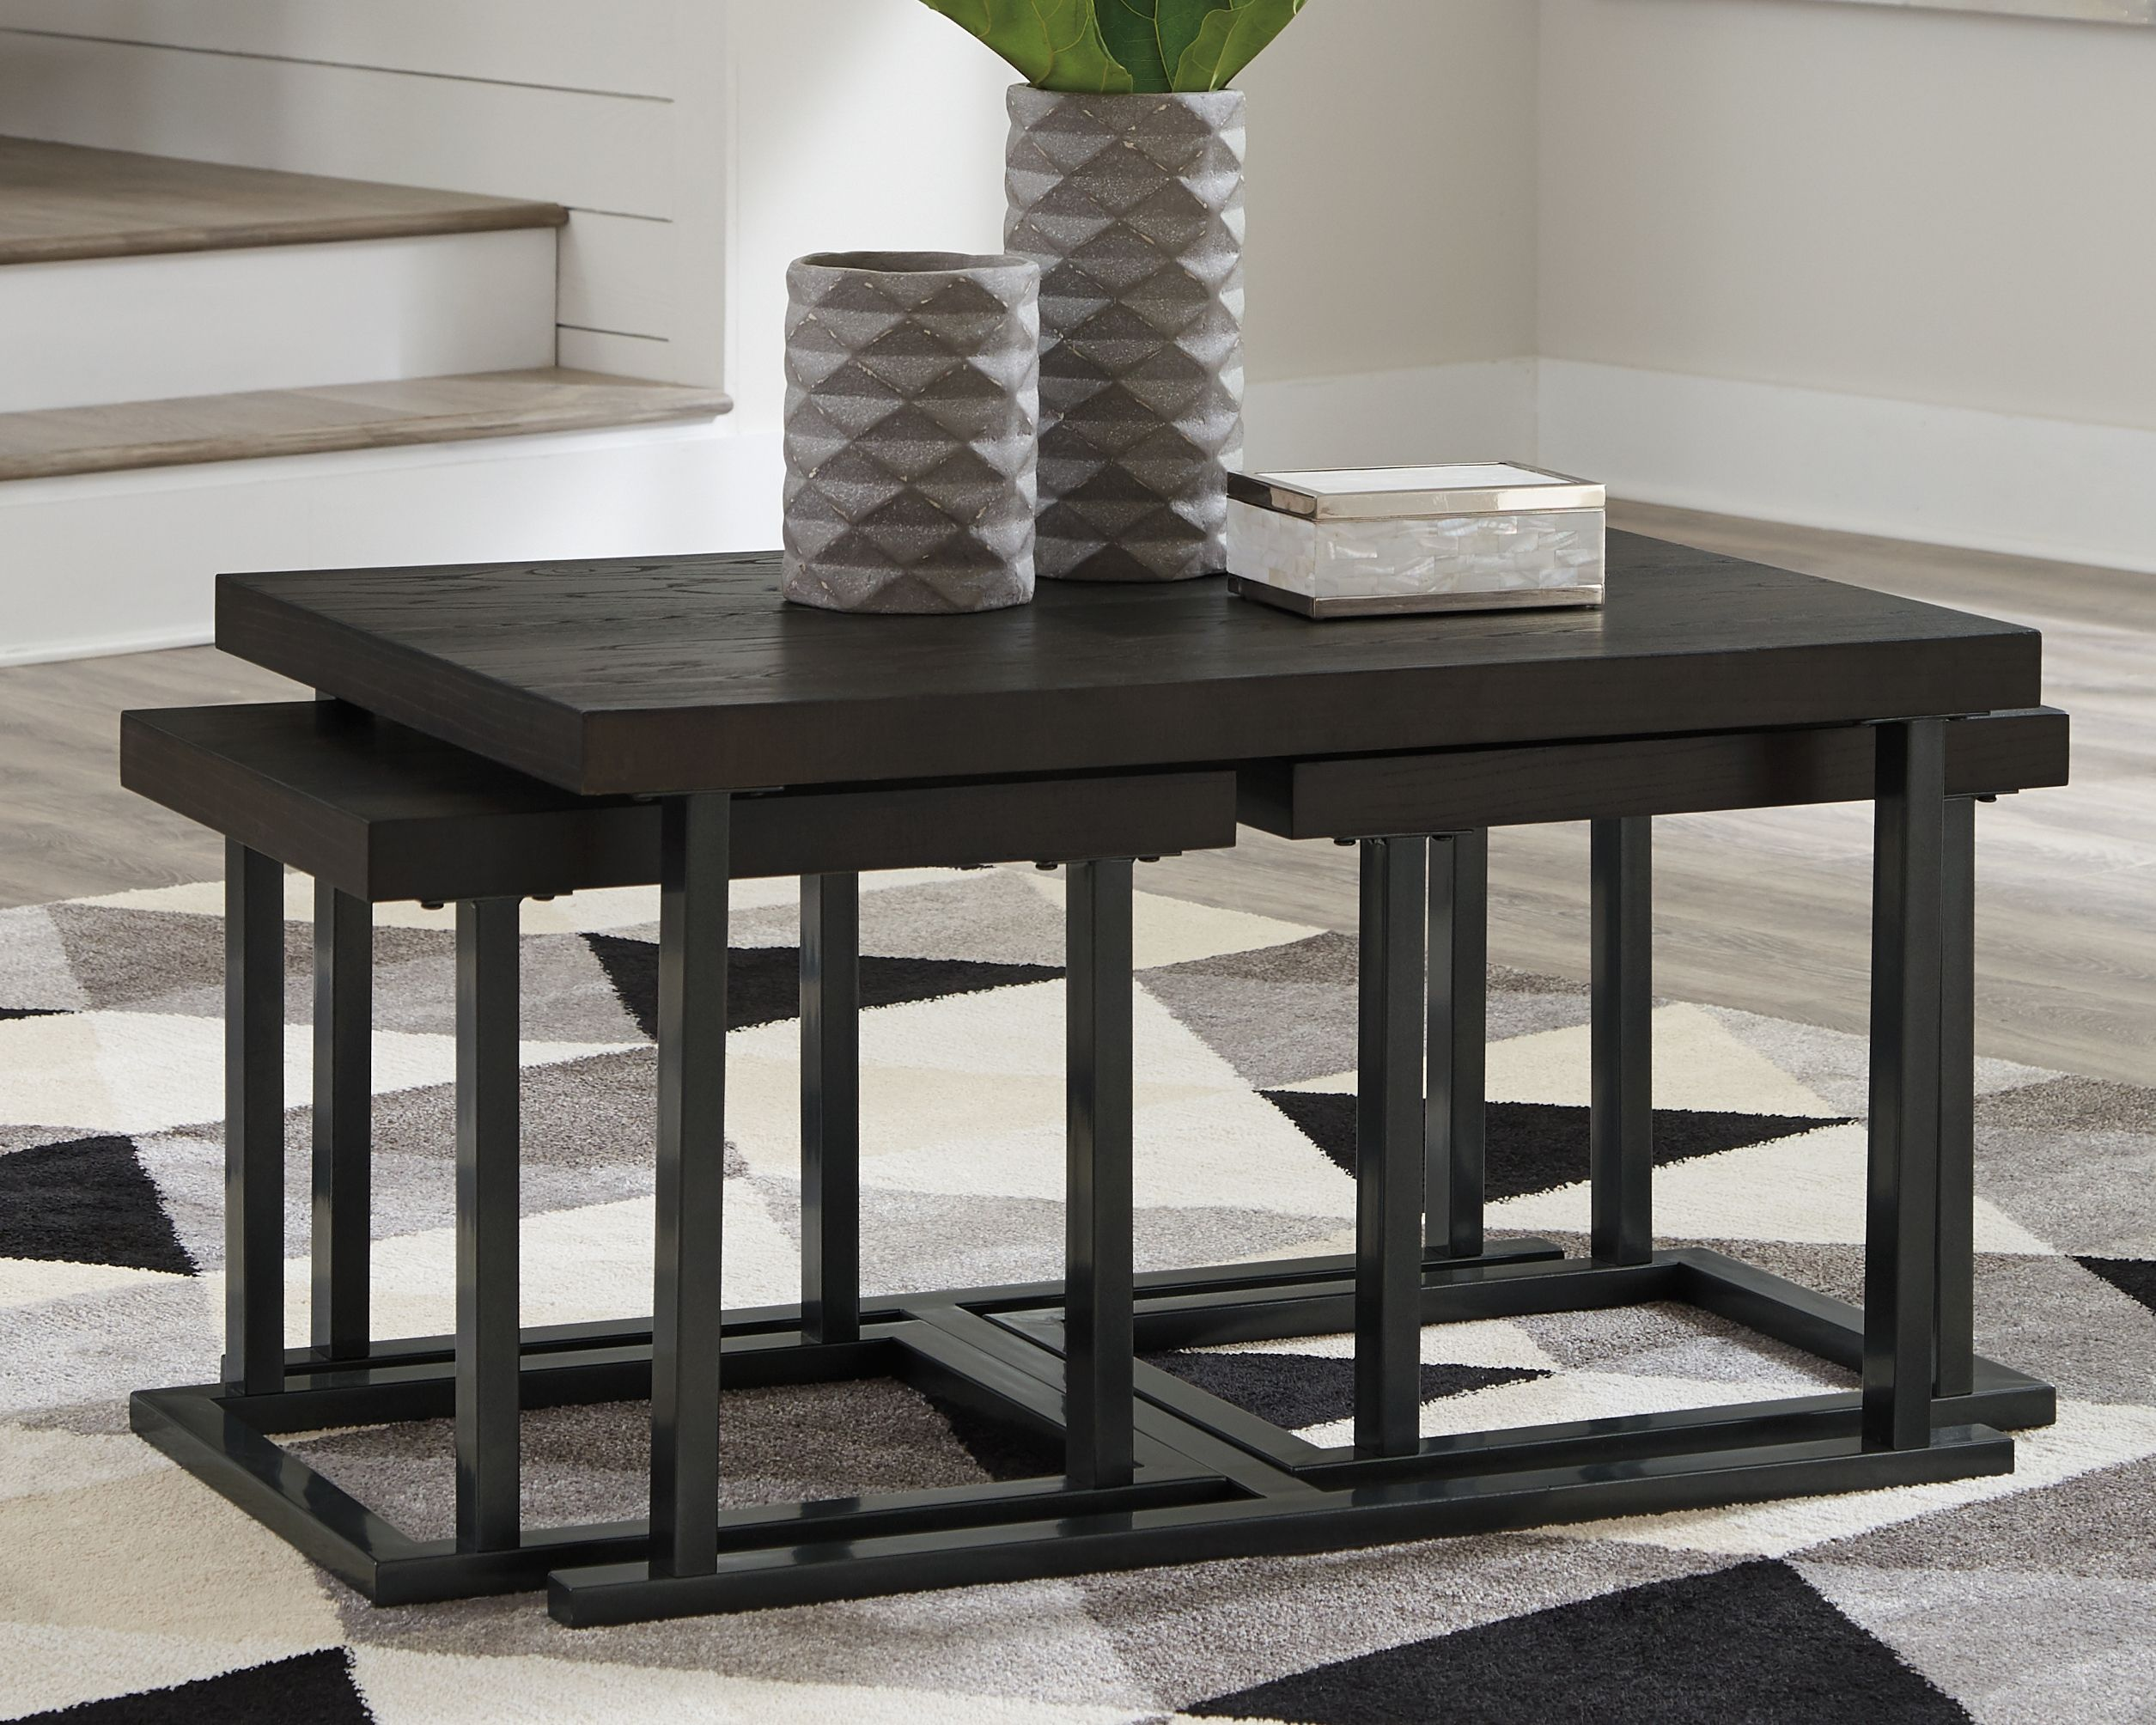 Airdon Coffee Table With Stools Set Of 3 Bronze In 2020